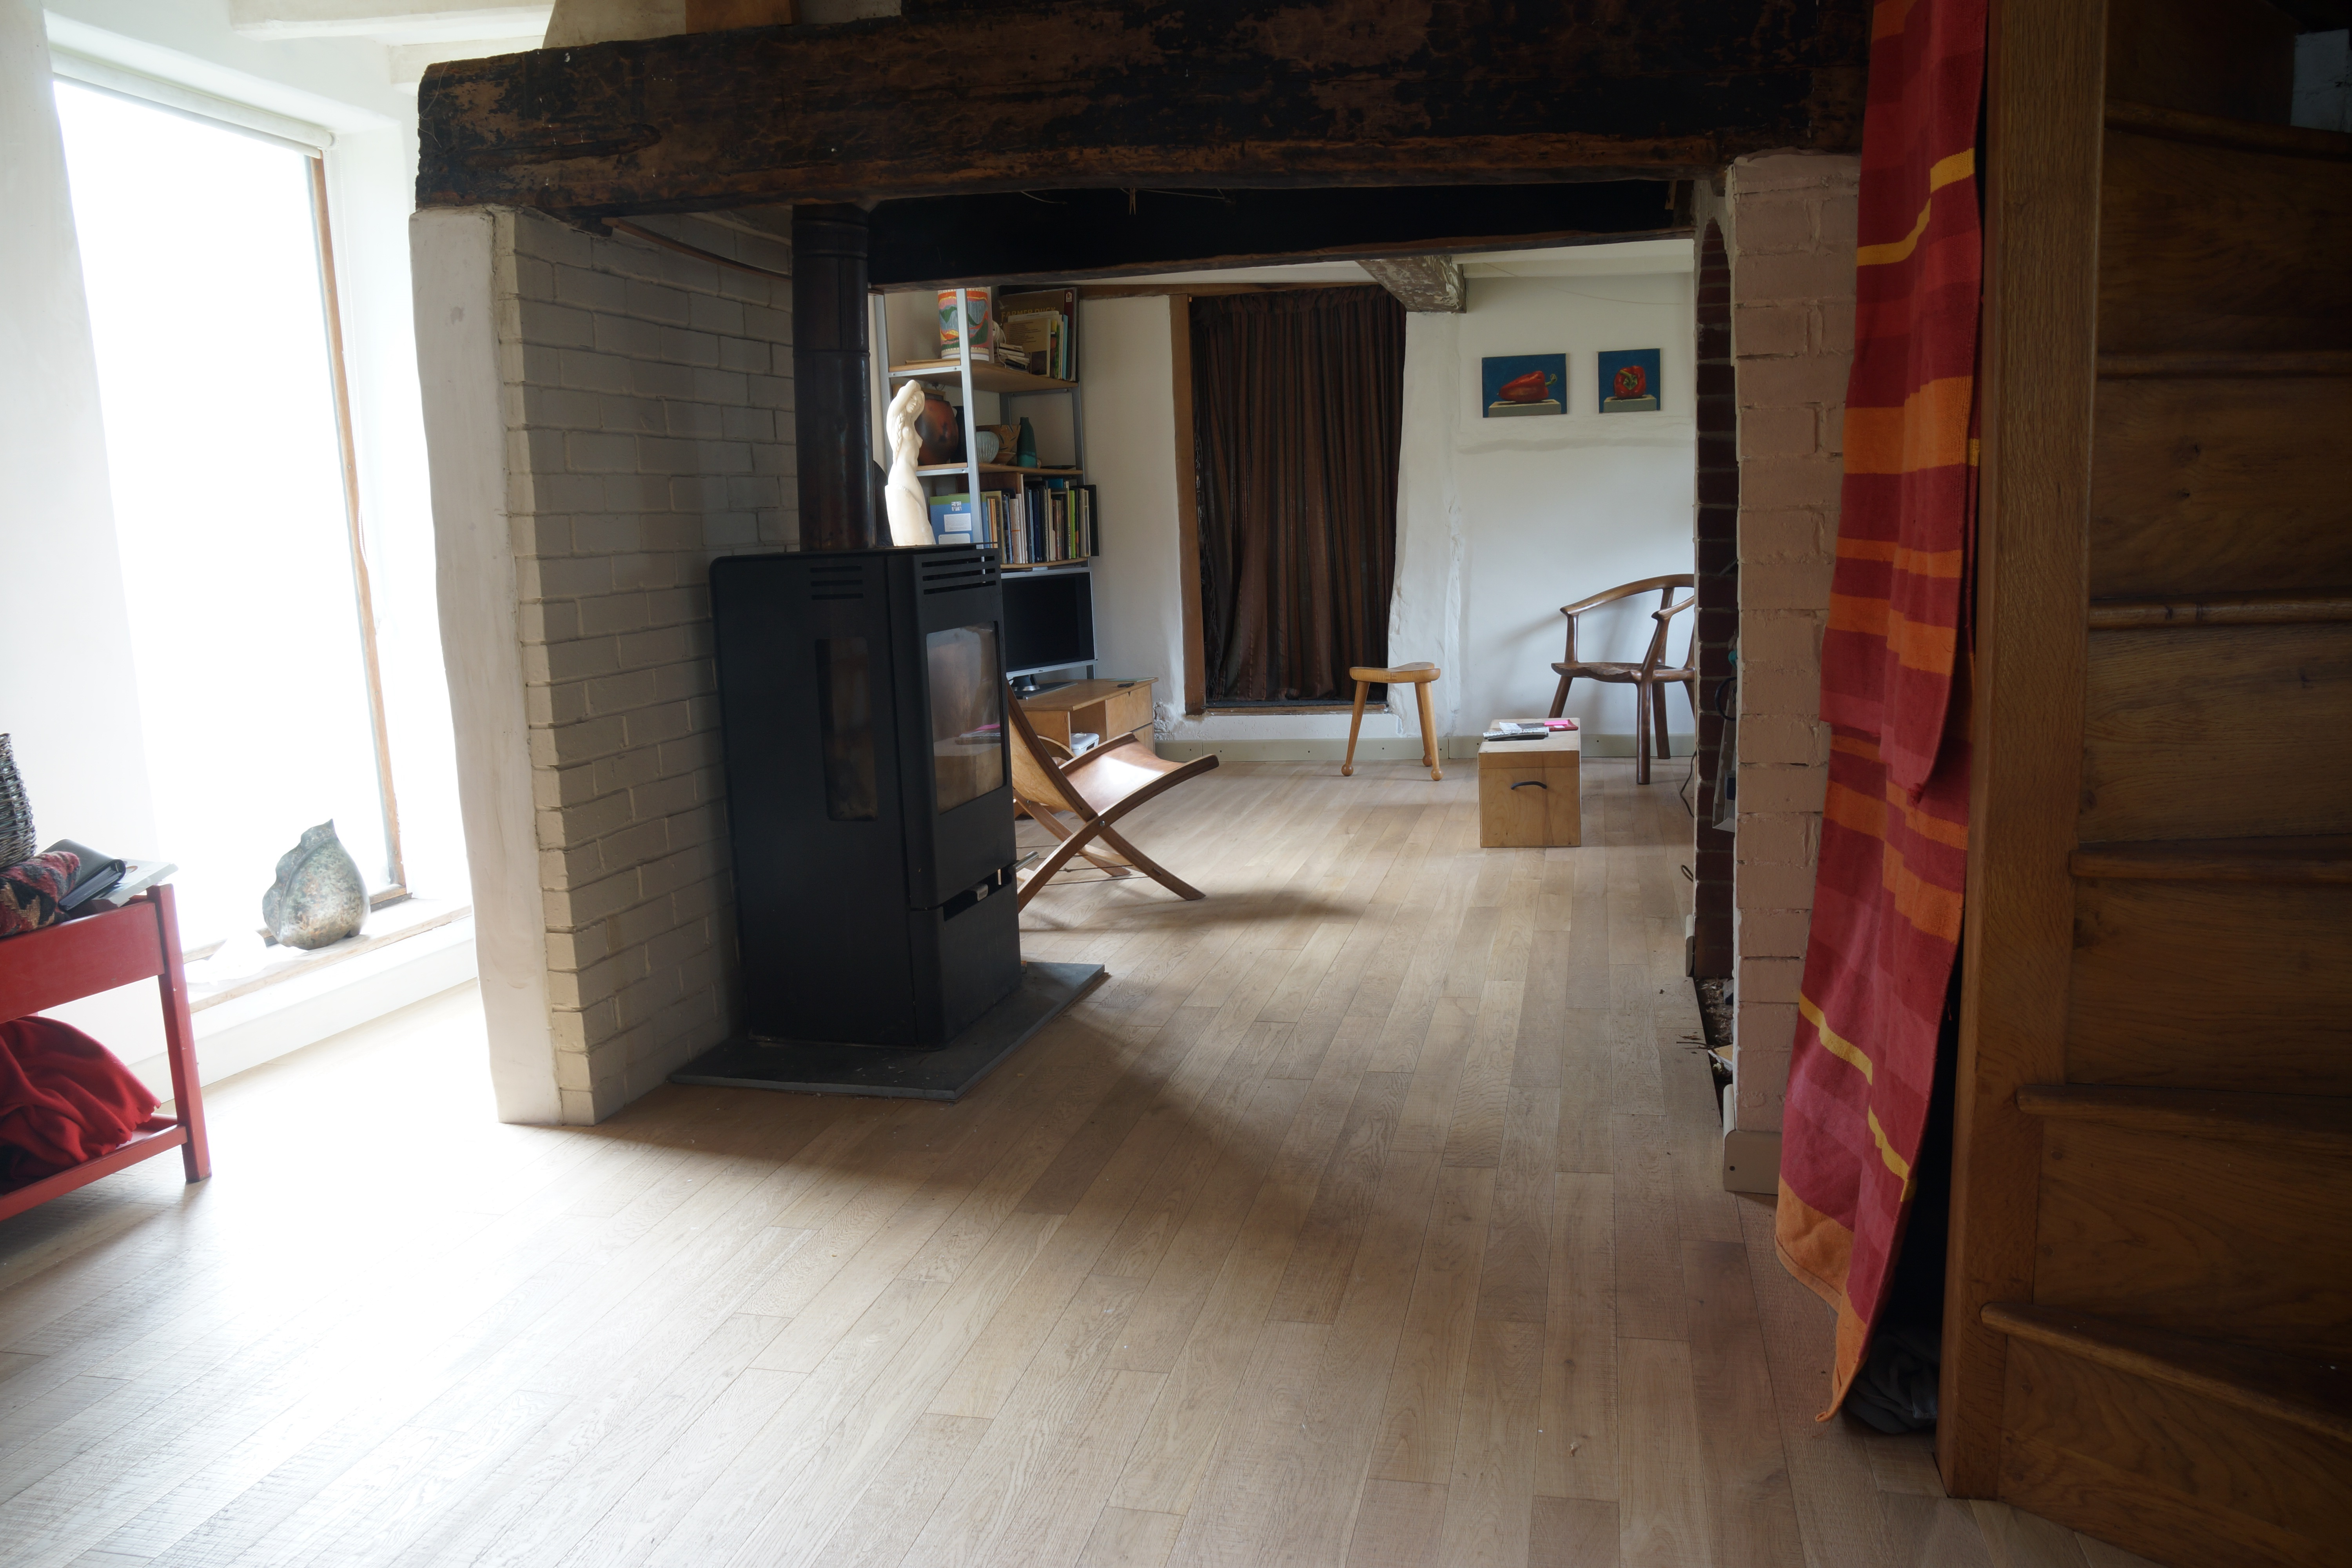 Band sawn white oak in a home with open plan living